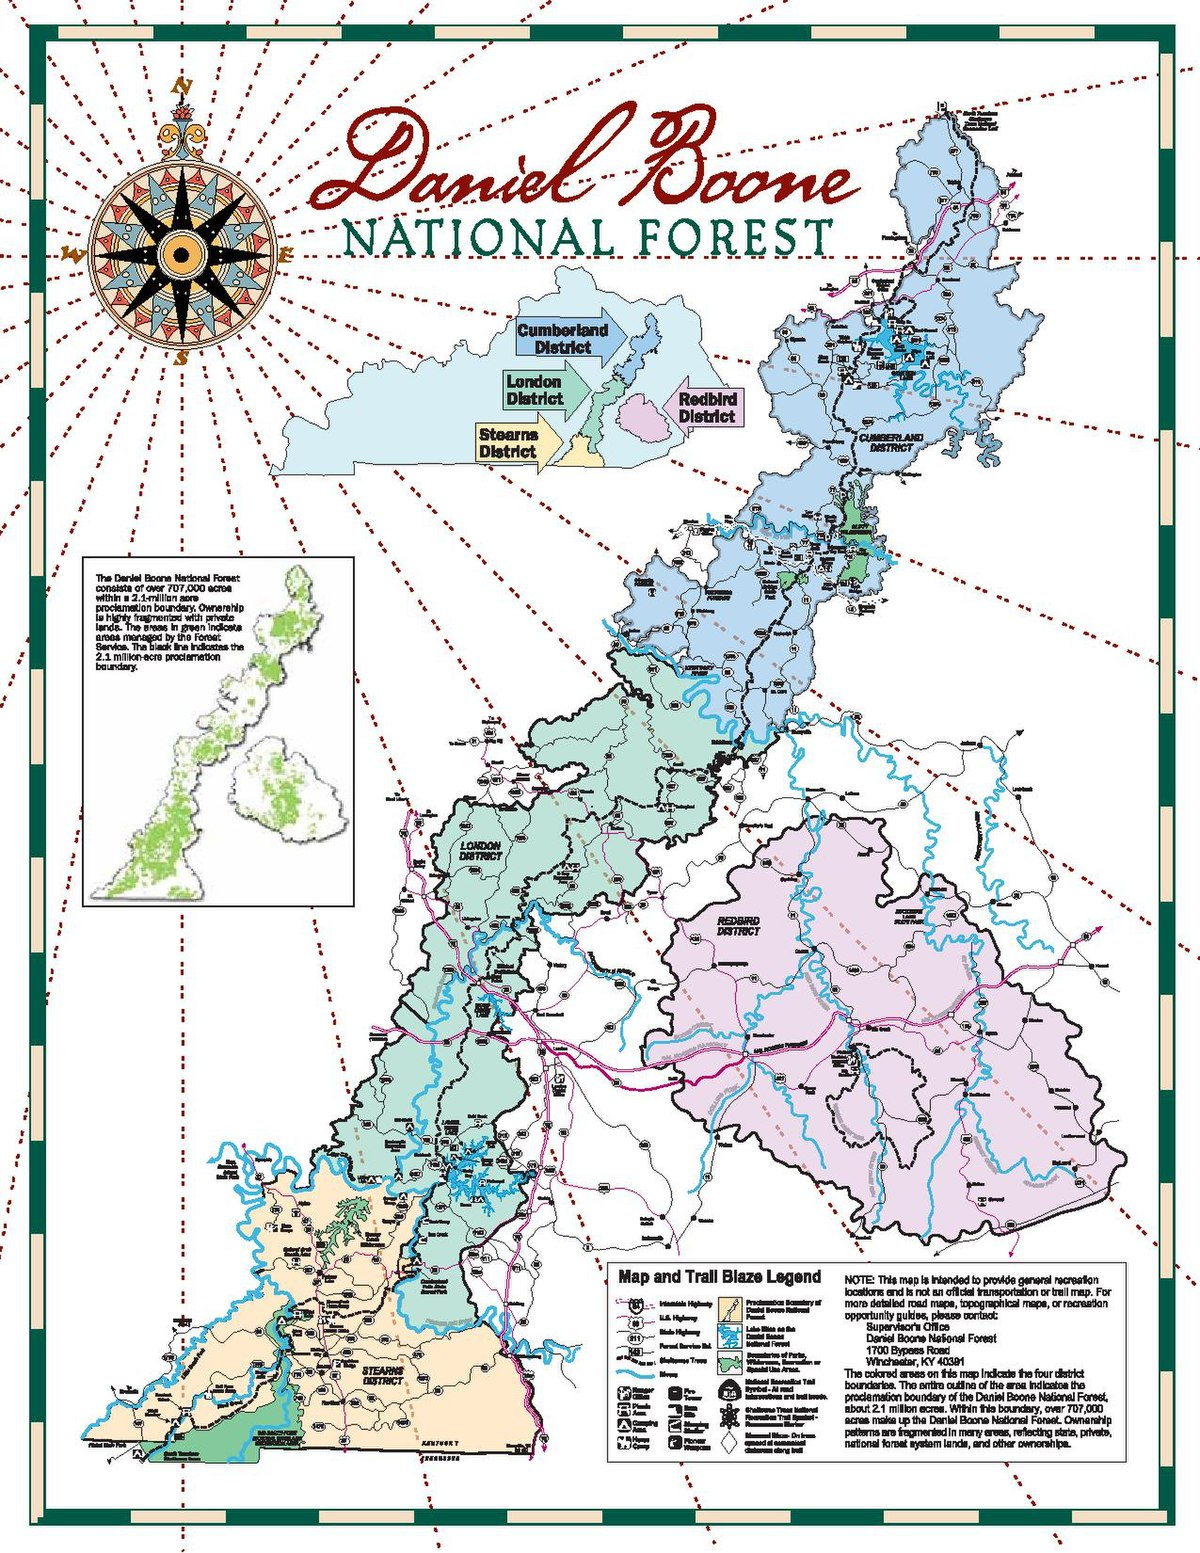 File:Daniel Boone National Forest USDA Map.pdf - Wikimedia ... on sheltowee trace trail map, united states trail map, royal blue atv trail map, giant sequoia national monument trail map, simon kenton trail map, town of bridgewater ma map, wagon train trail map, boone cliffs trail map, chief joseph trail map, national road, mountain to sea trail map, mark twain trail map, old spanish trail, omaha trail map, gap trail map, marco polo trail map, pickett state park trail map, kit carson trail map, ross prairie trail map, natchez trace, big south fork trail map, great wagon road, cleveland national forest trail map, south mountain trail map, santa fe trail,